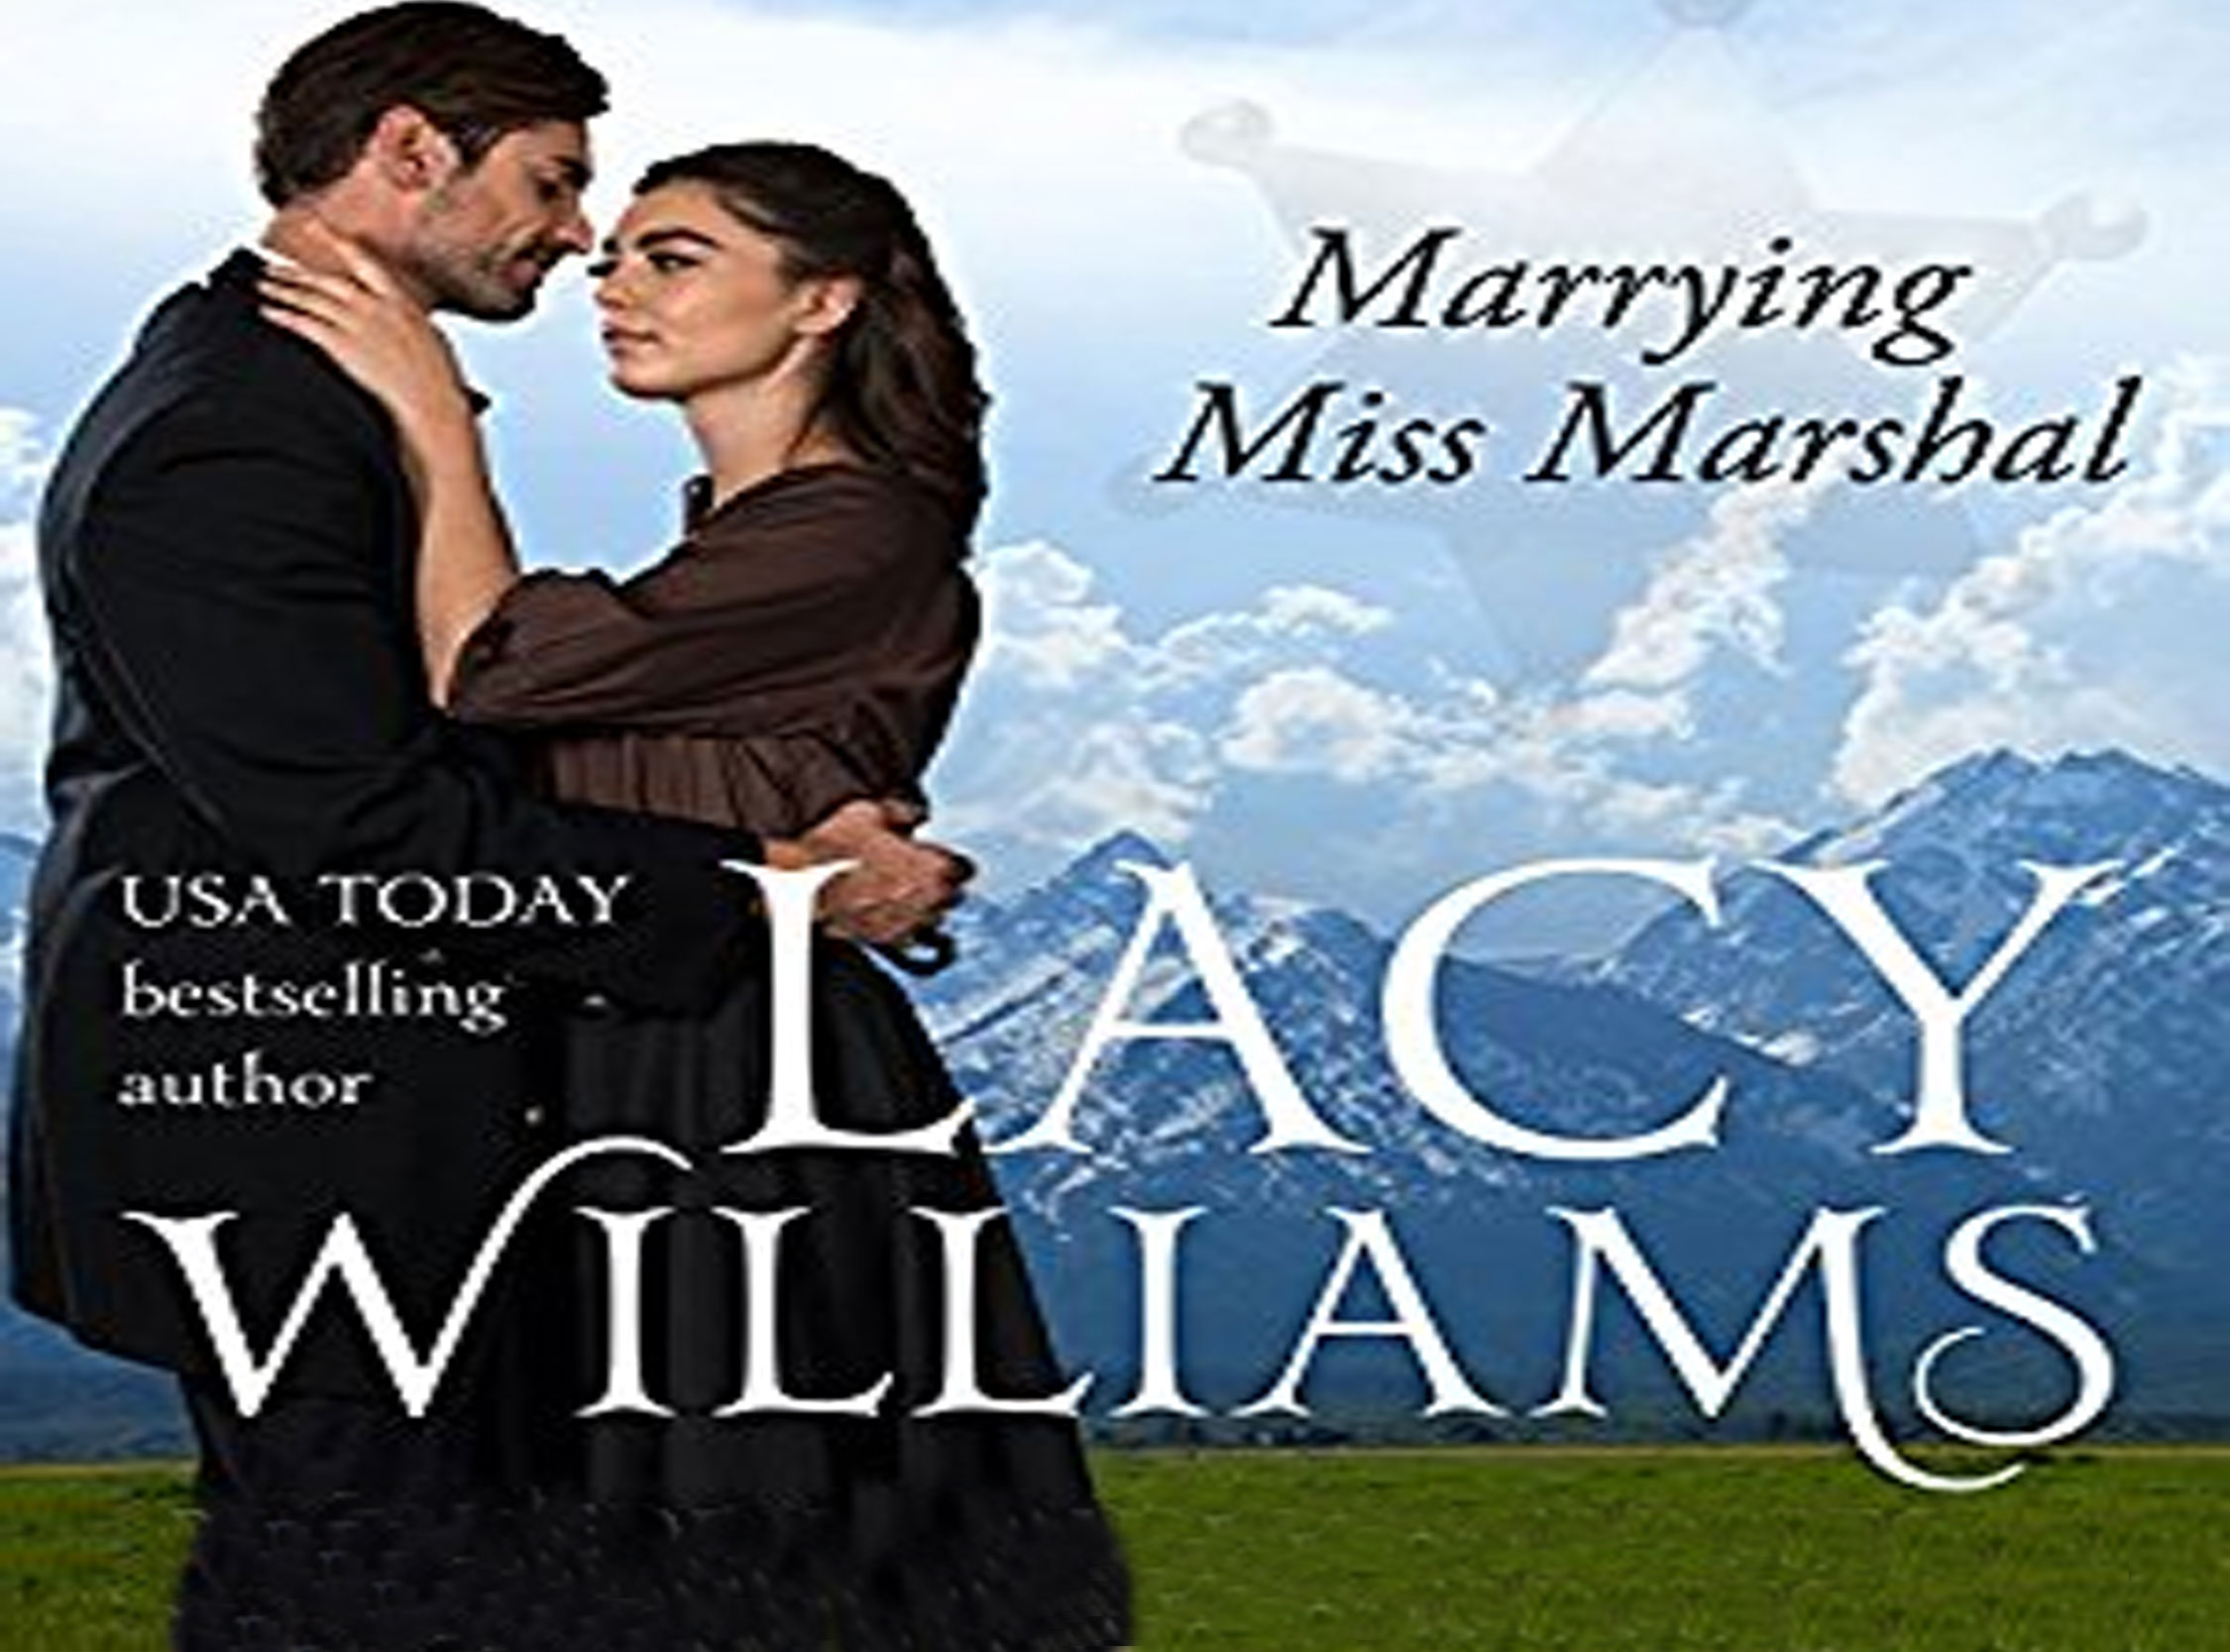 Marrying Miss Marshall - Amazon Link